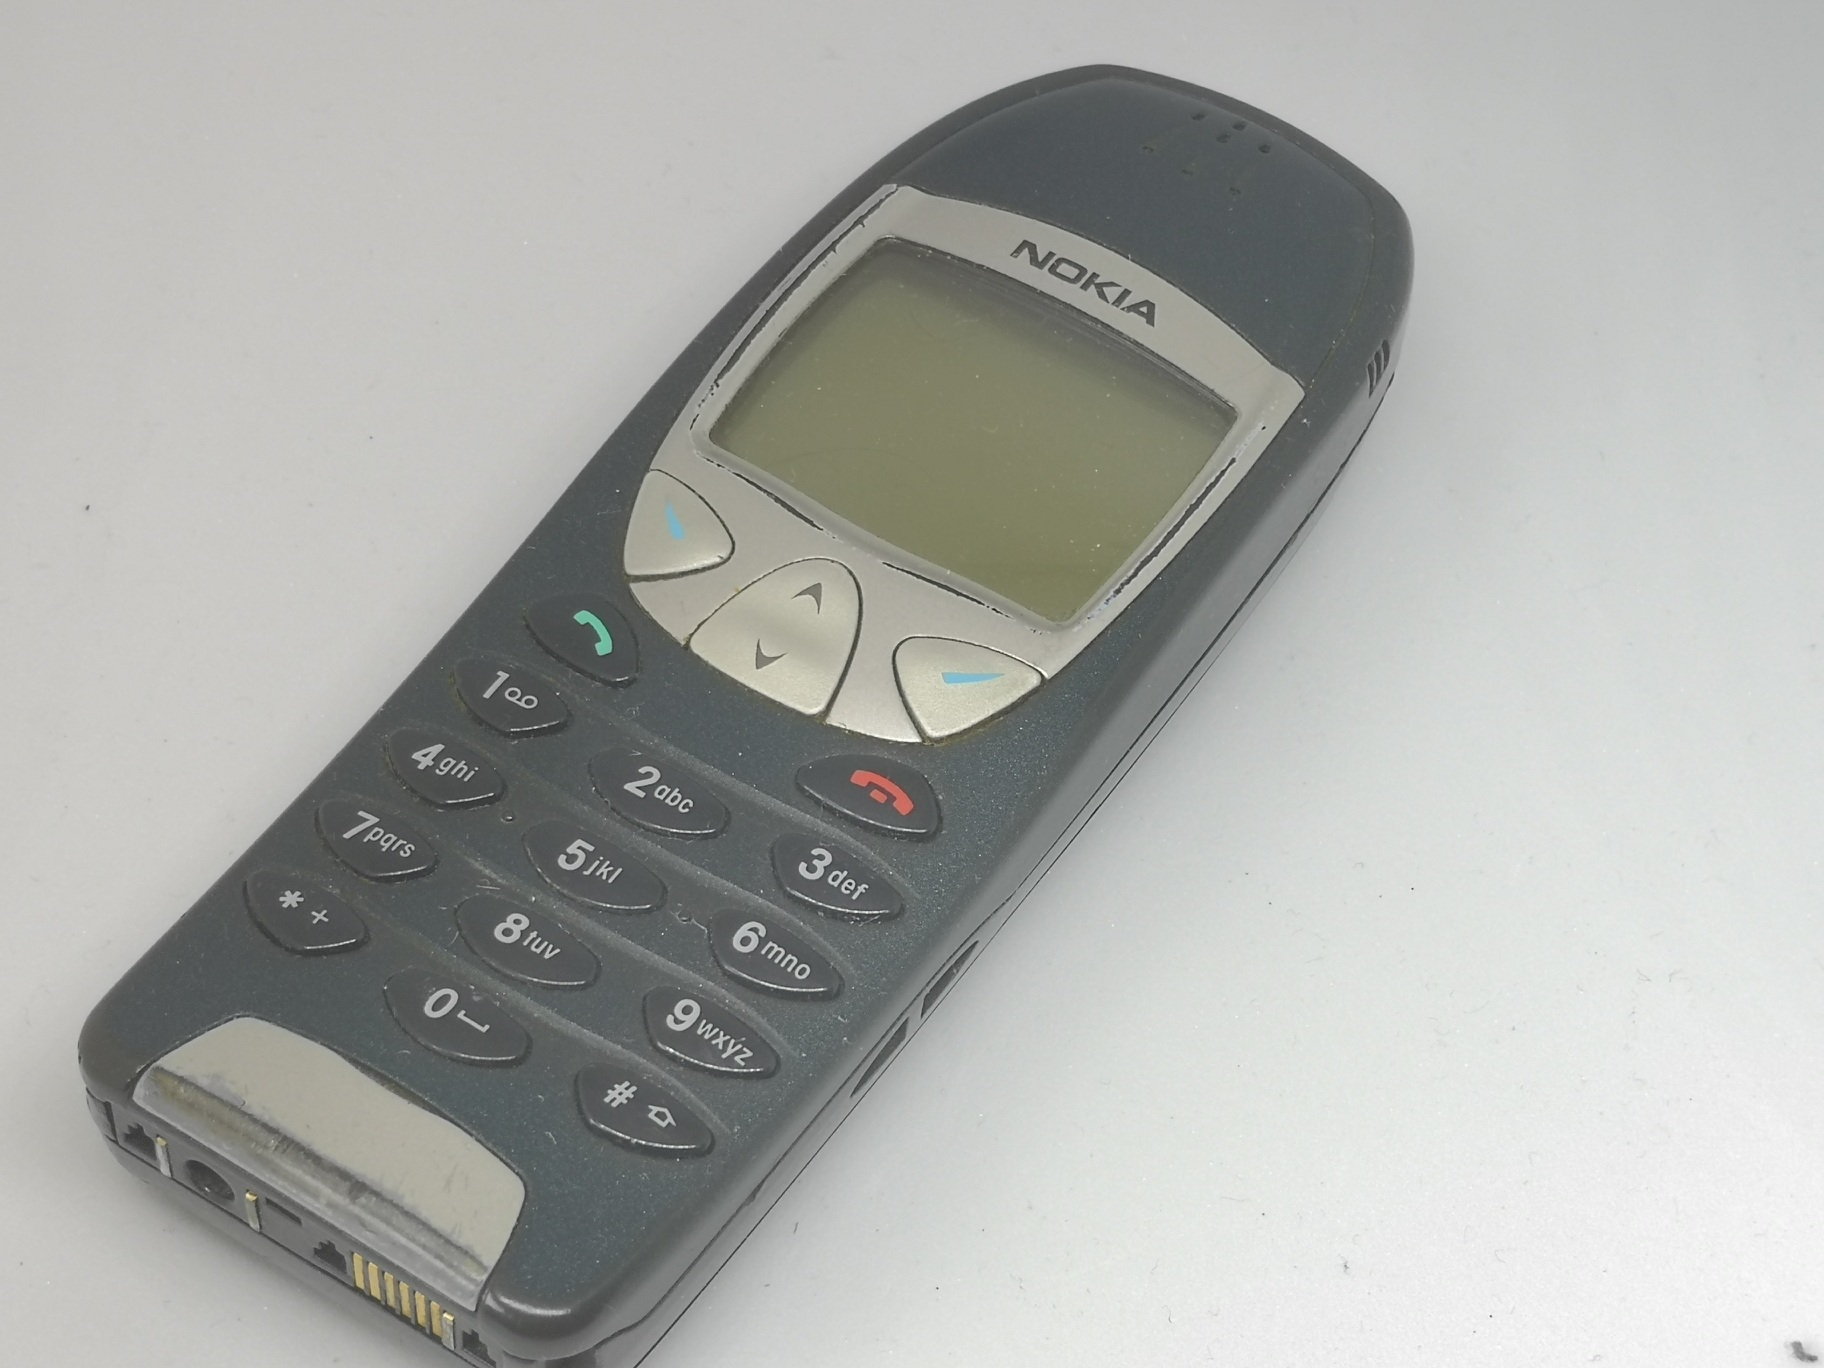 Nokia 6210 Review: Groundbreaking Business Mobile Phone